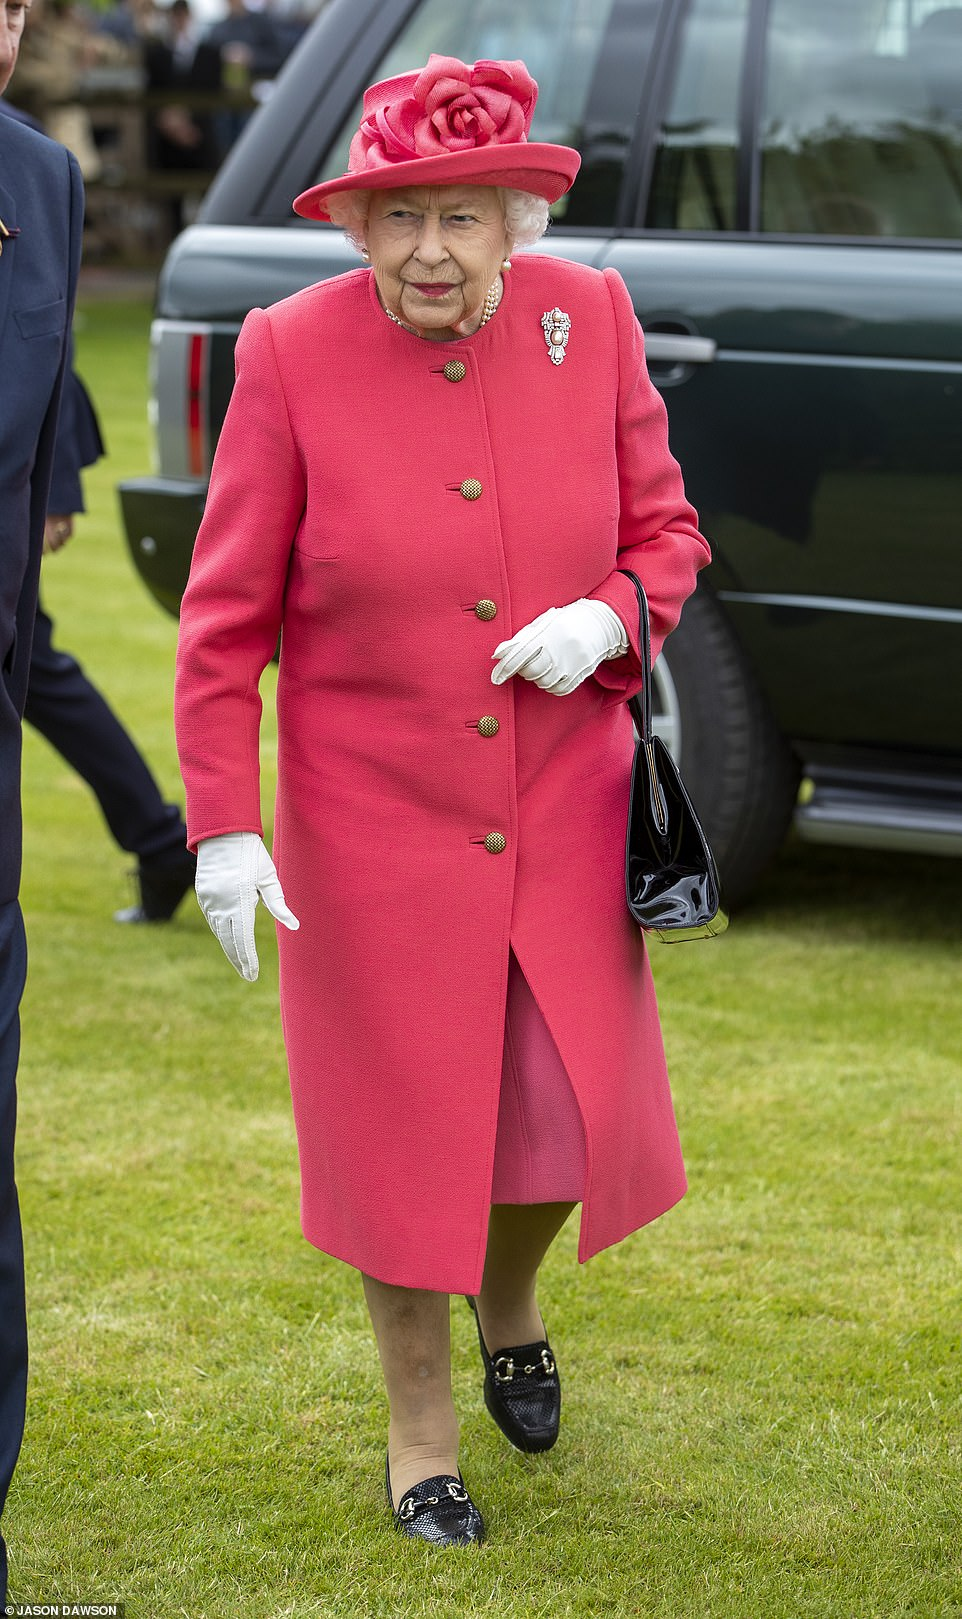 14857130-7147355-The_Queen_wore_a_lovely_hot_pink_coat_with_a_matching_hat_and_ac-a-42_1560702845045